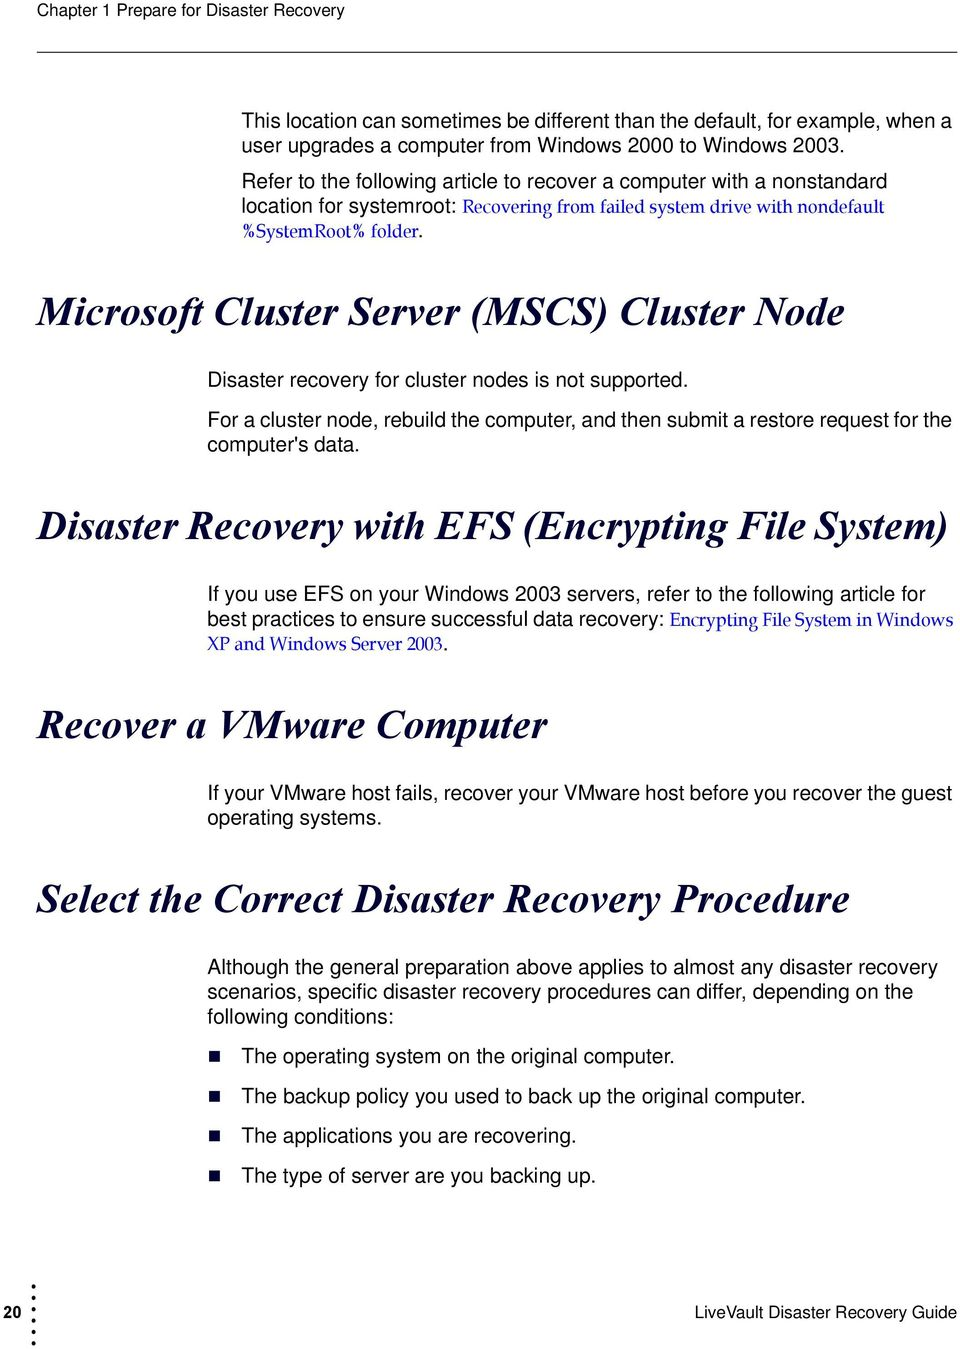 Microsoft Cluster Server (MSCS) Cluster Node Disaster recovery for cluster nodes is not supported. For a cluster node, rebuild the computer, and then submit a restore request for the computer's data.